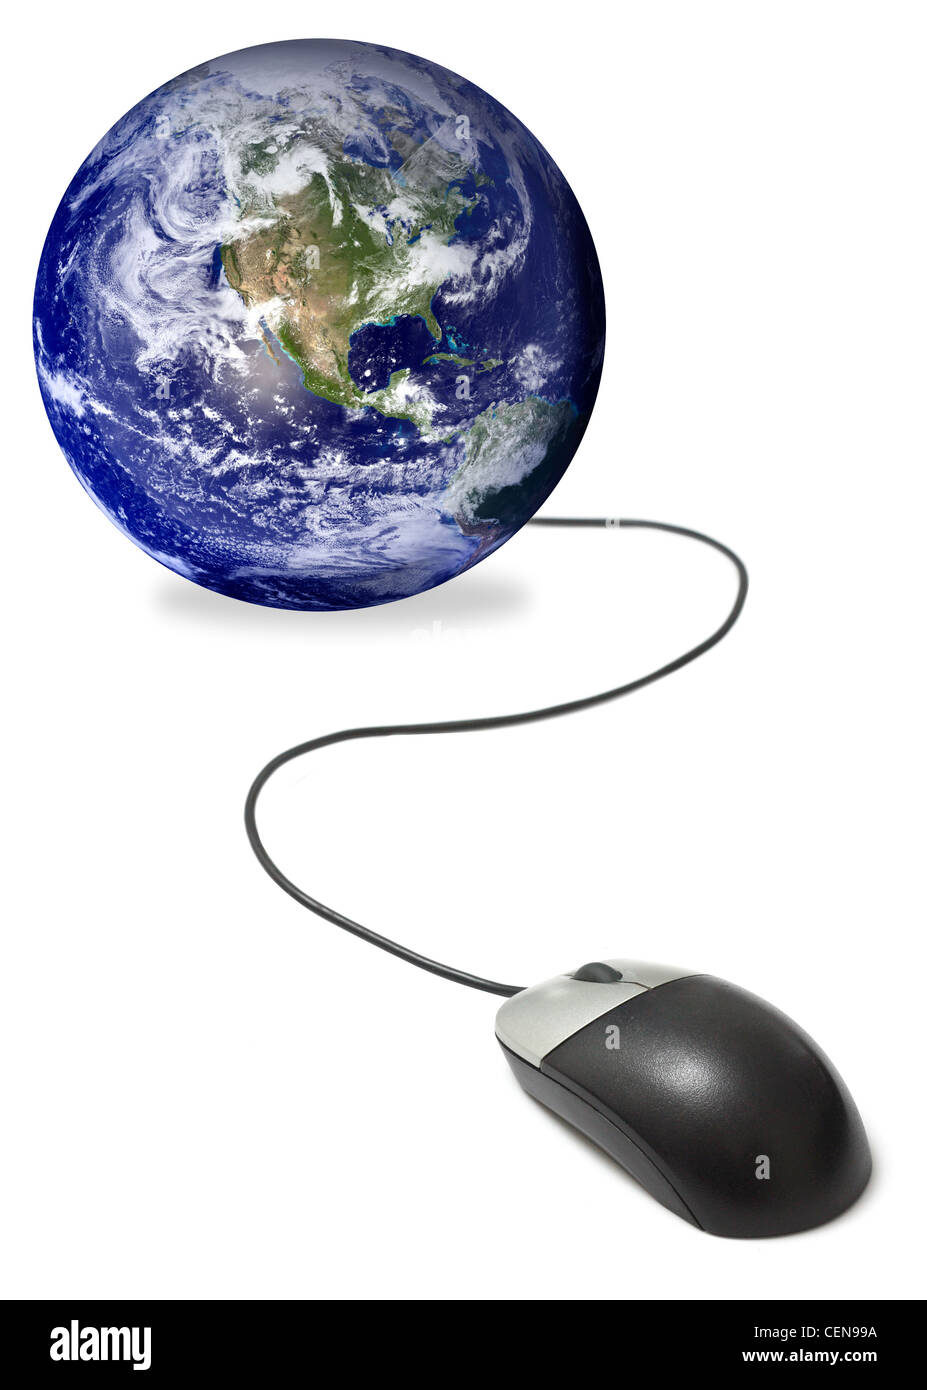 Connected to the world - Stock Image